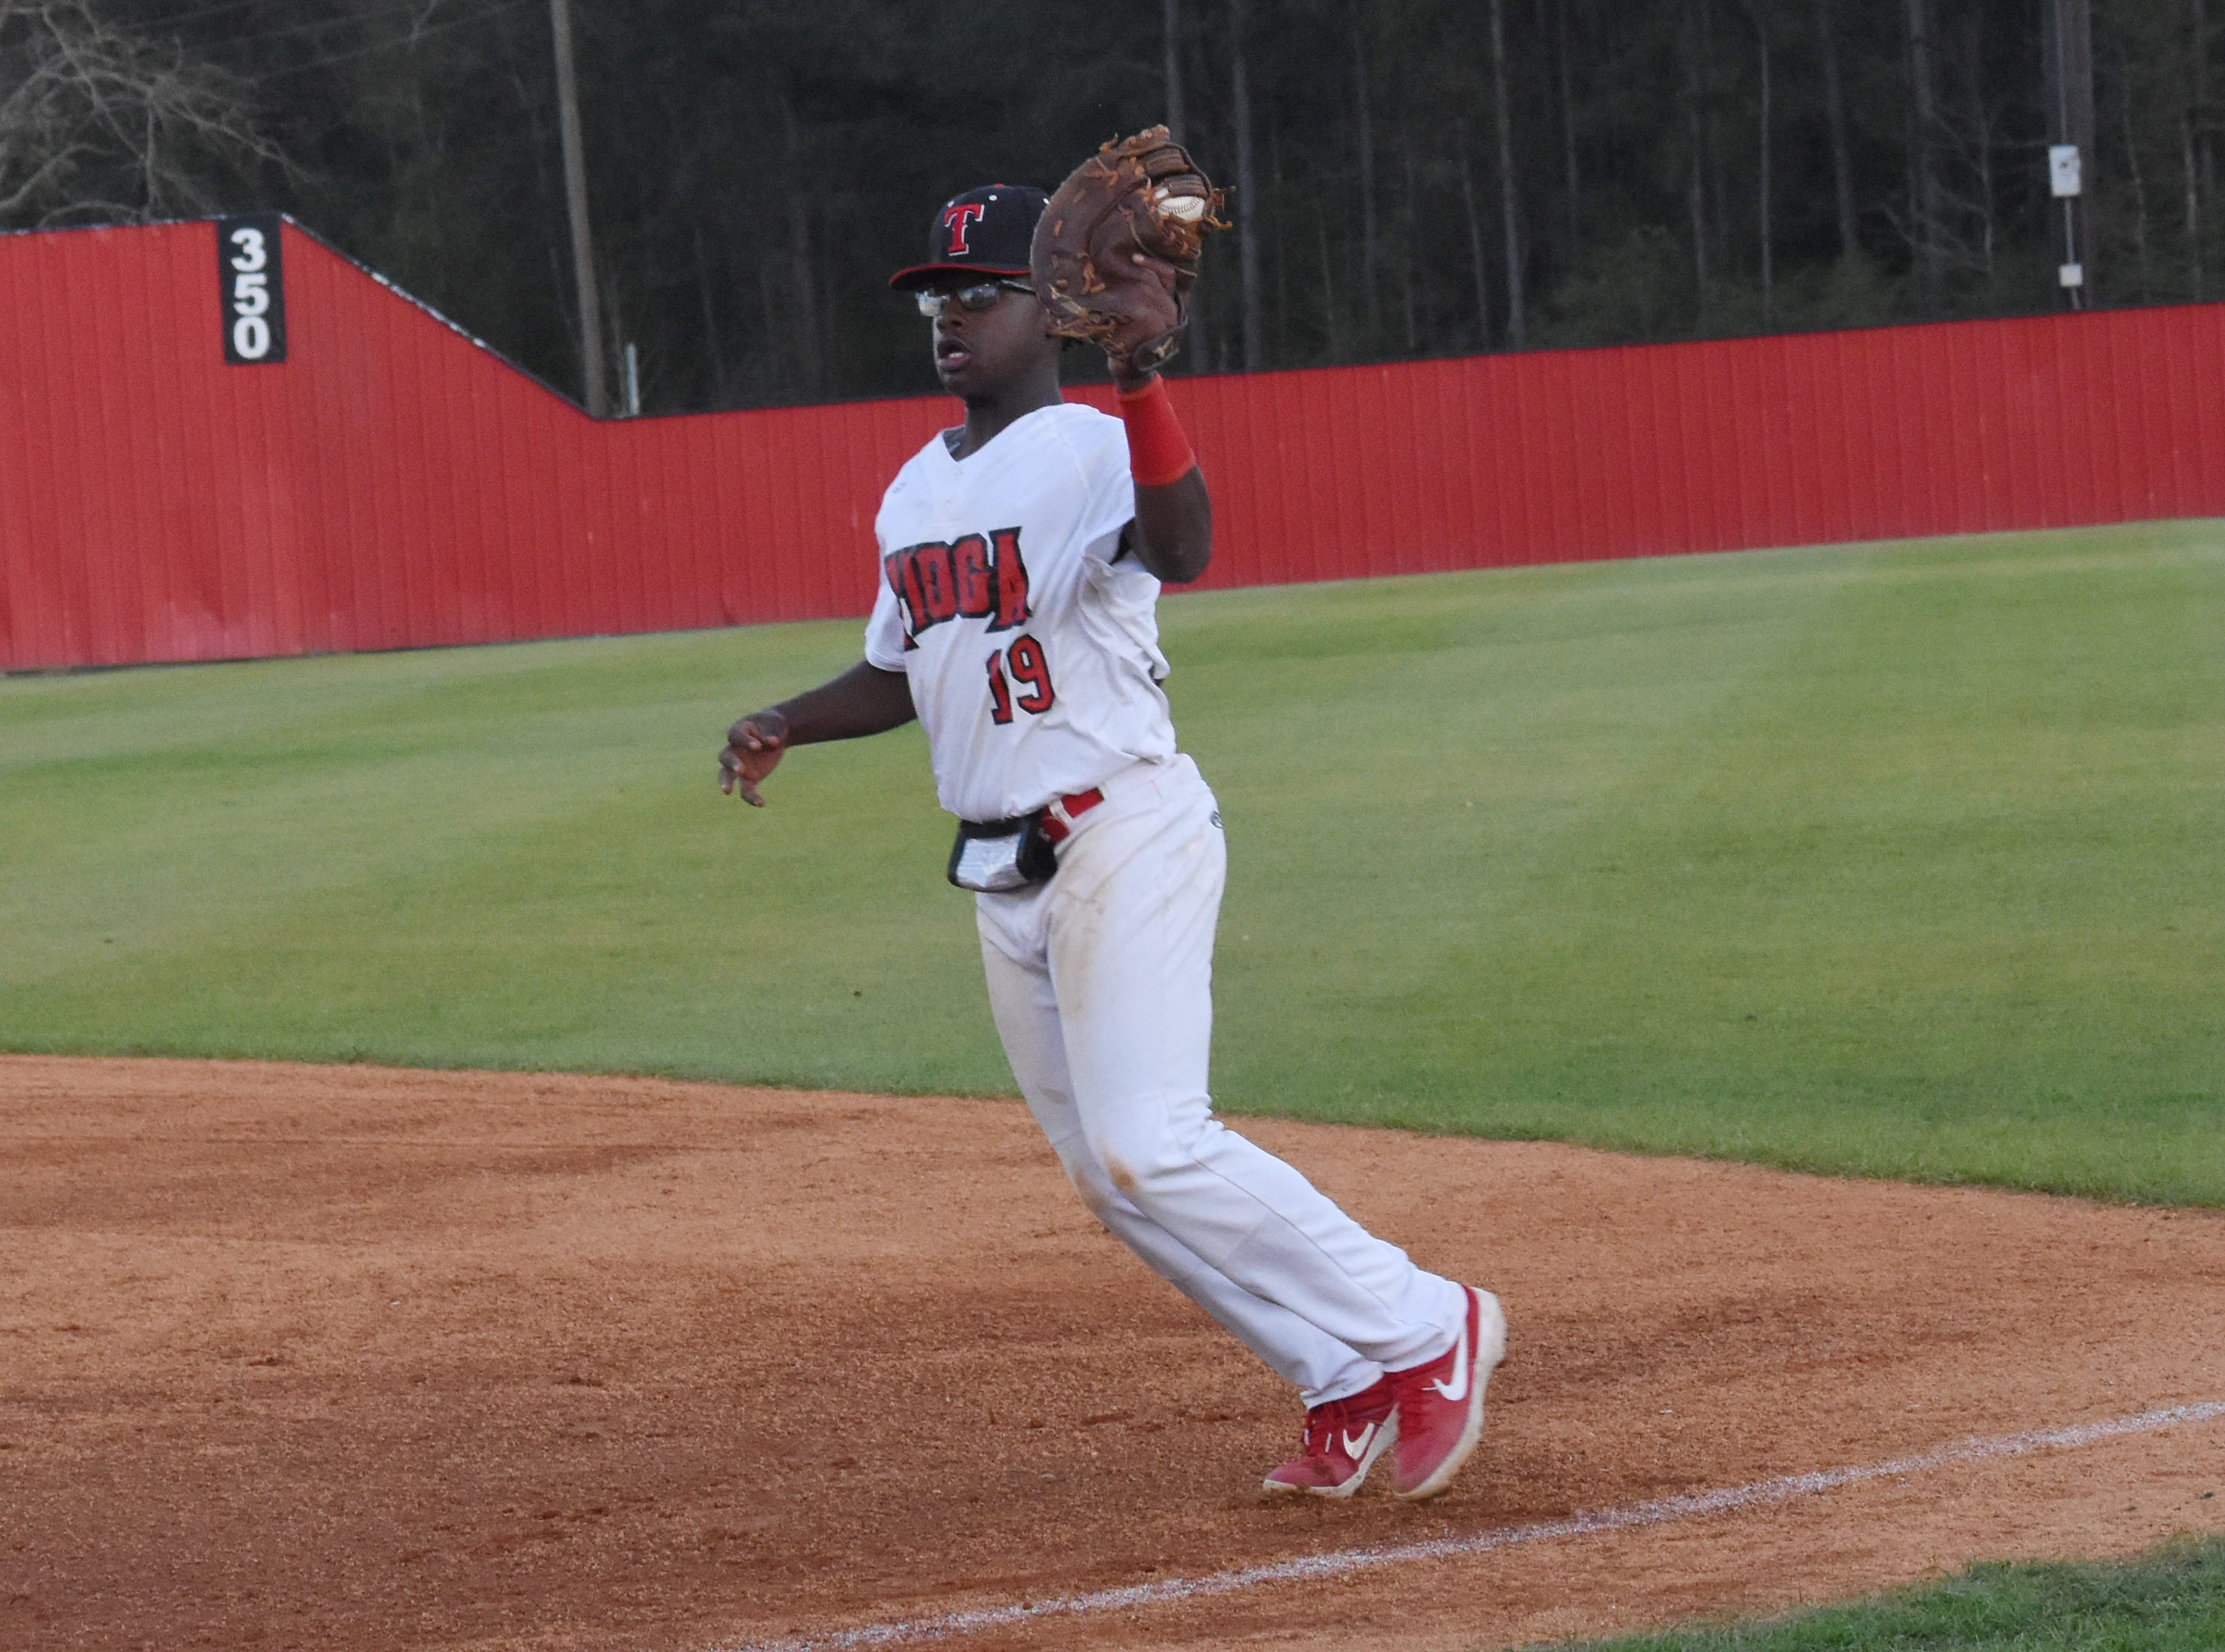 Tioga High School hosted Deridder High School Thursday, March 21, 2019. Tioga won 9-2.